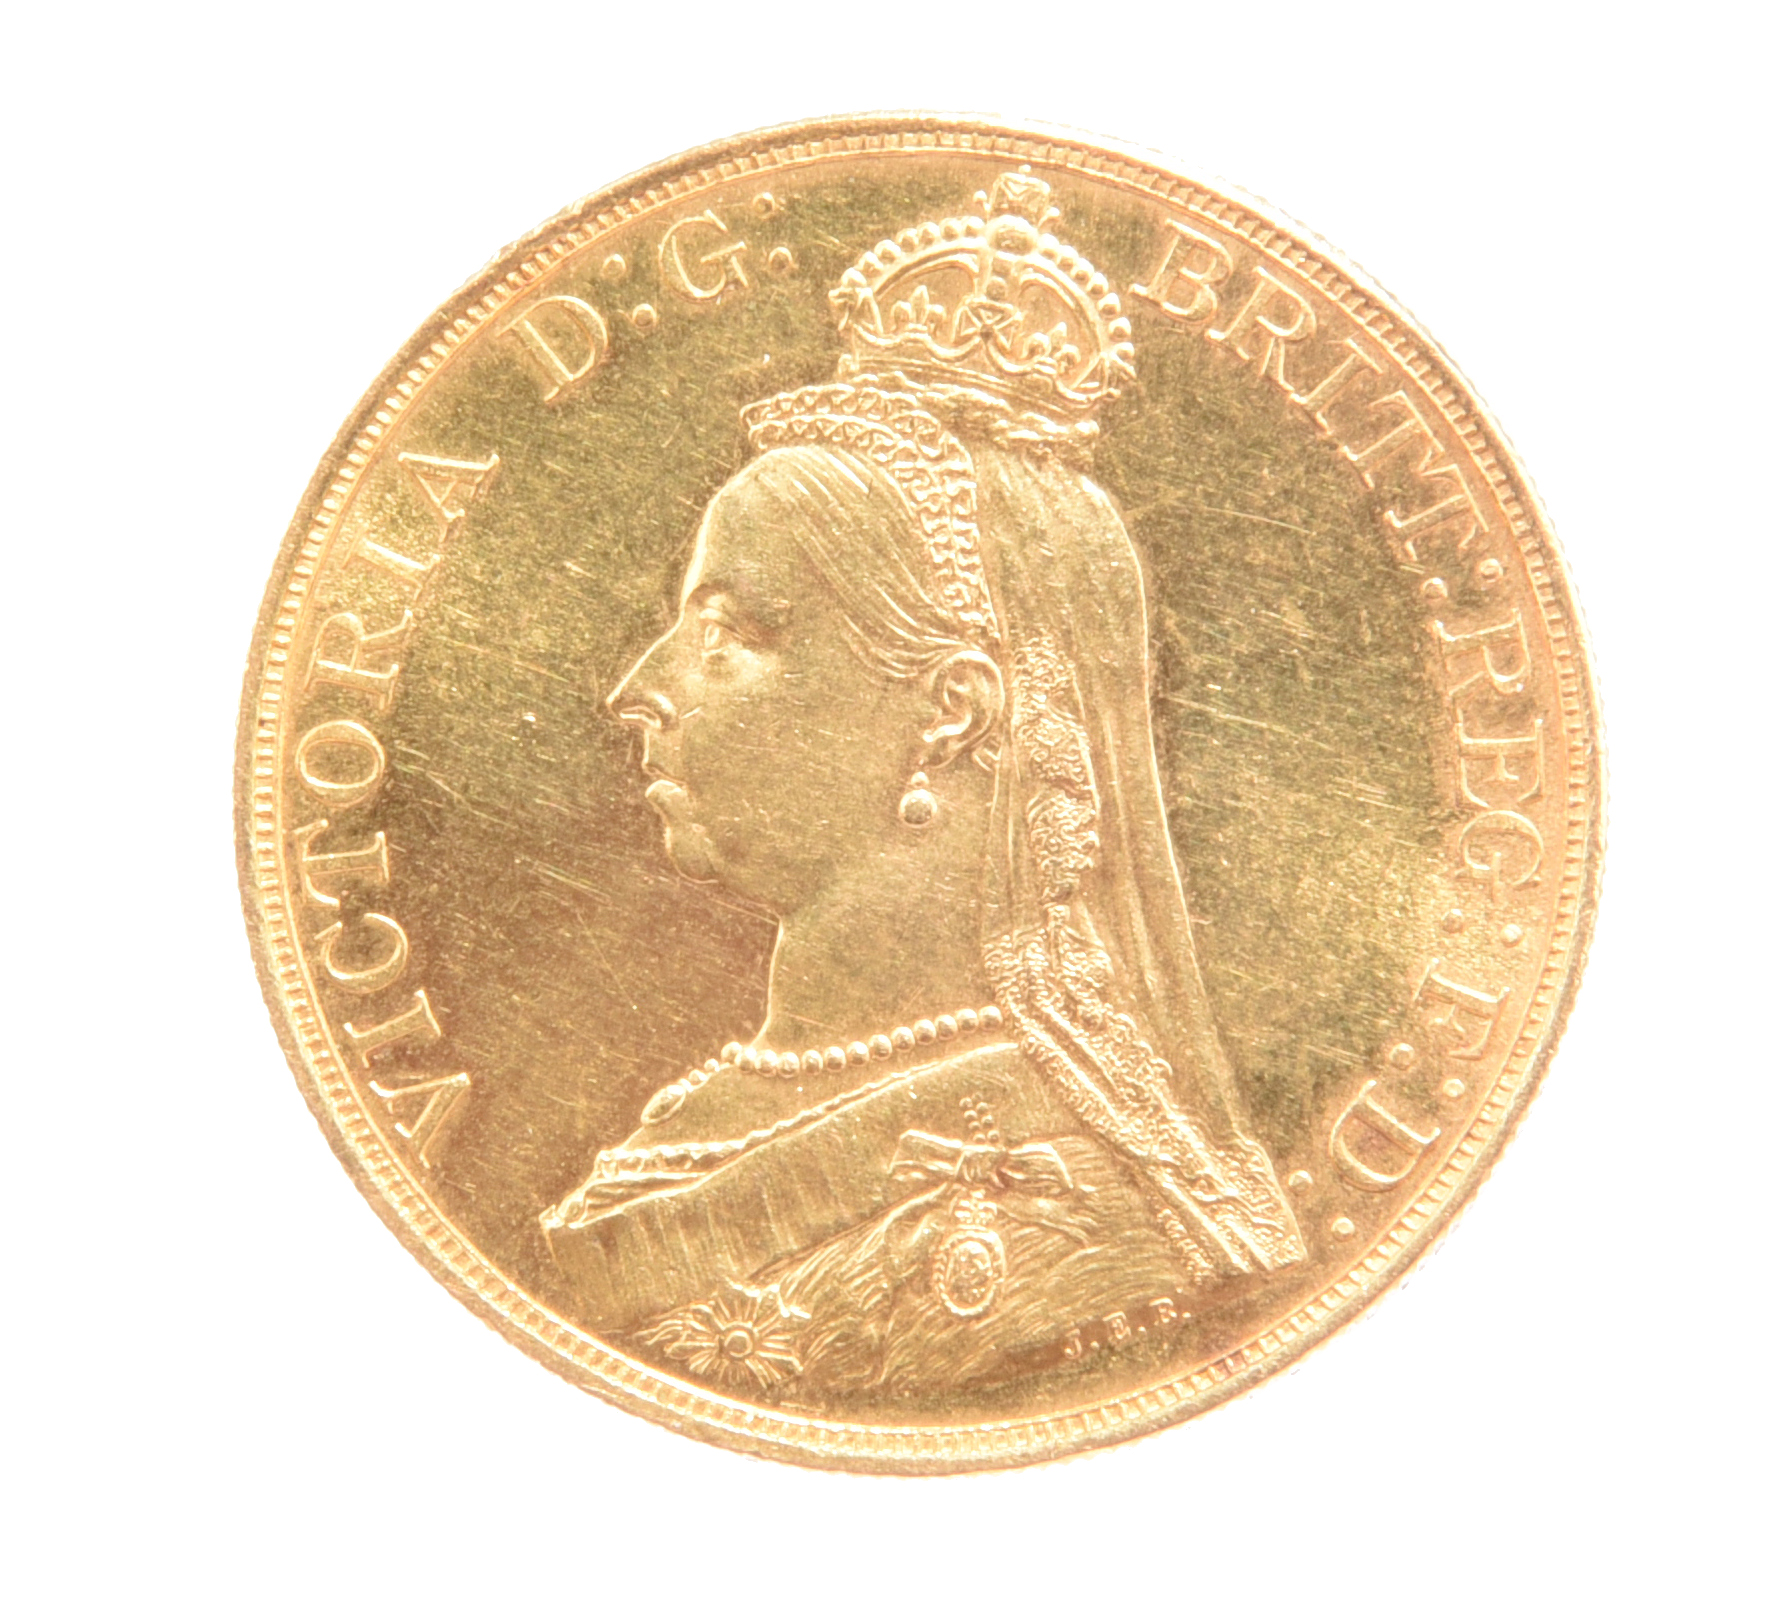 Victoria, gold five pounds, 1887 (S 3864), hairlining and minor marks to fields, otherwise about